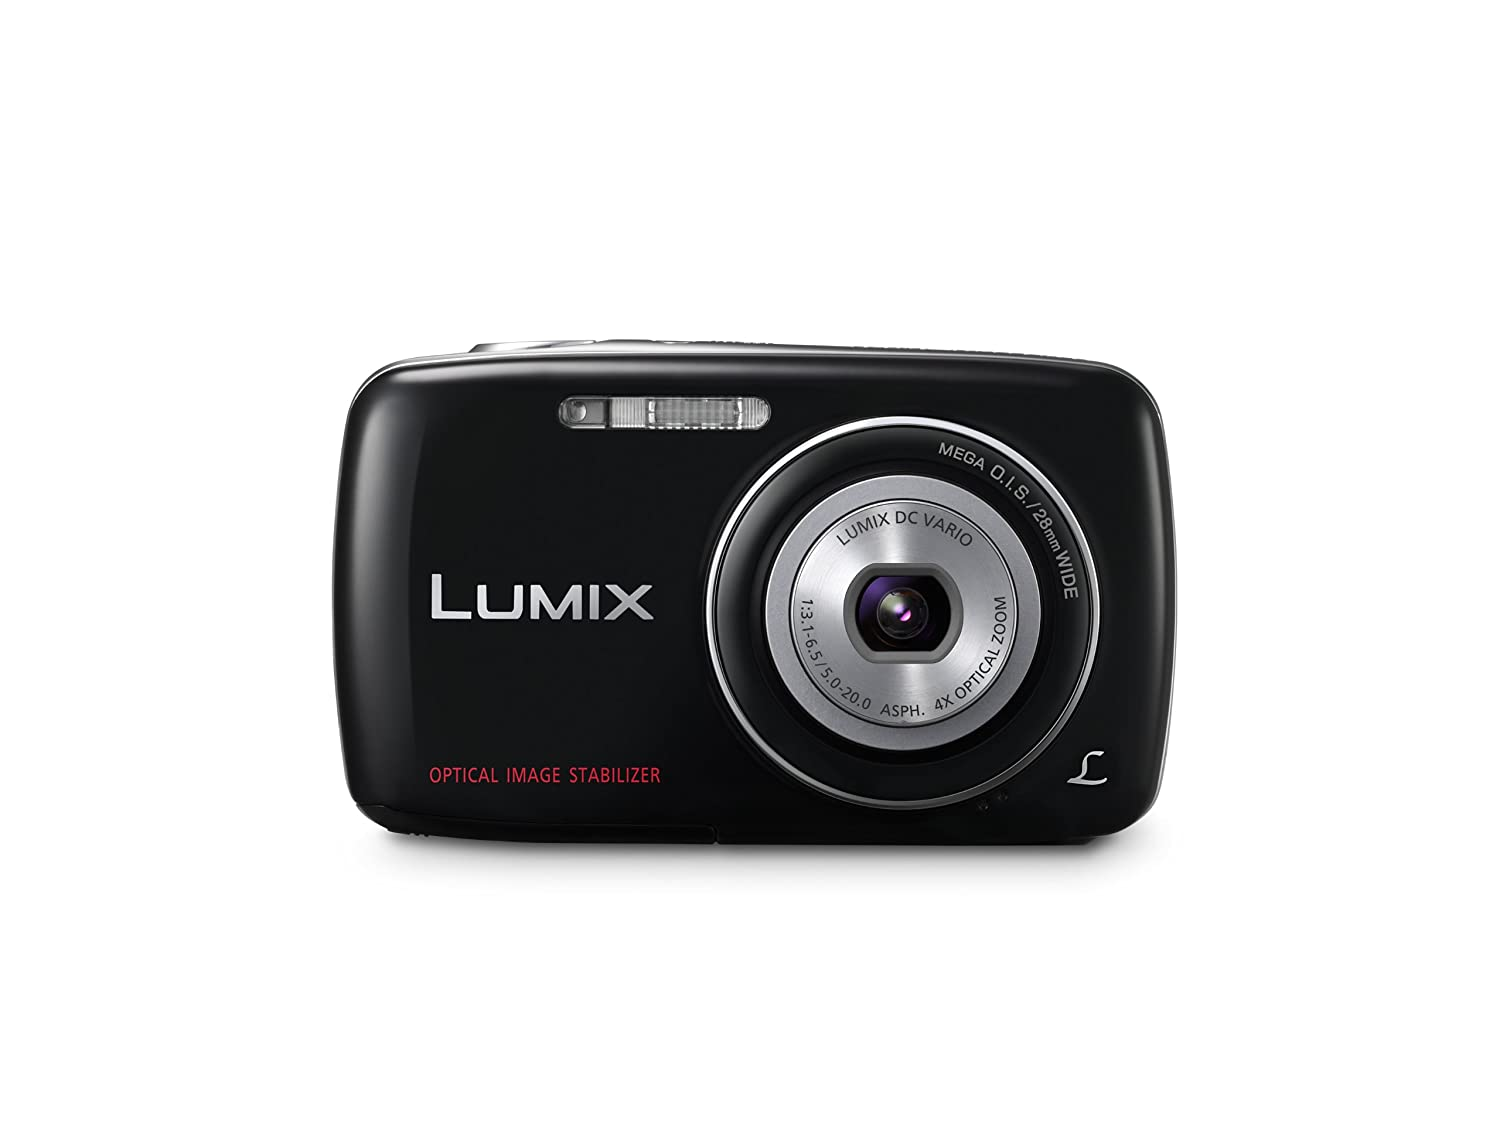 Panasonic Lumix DMC-S3 14.1 MP Digital Camera with 4x Optical Image Stabilized Zoom with 2.7-Inch LCD (Black)